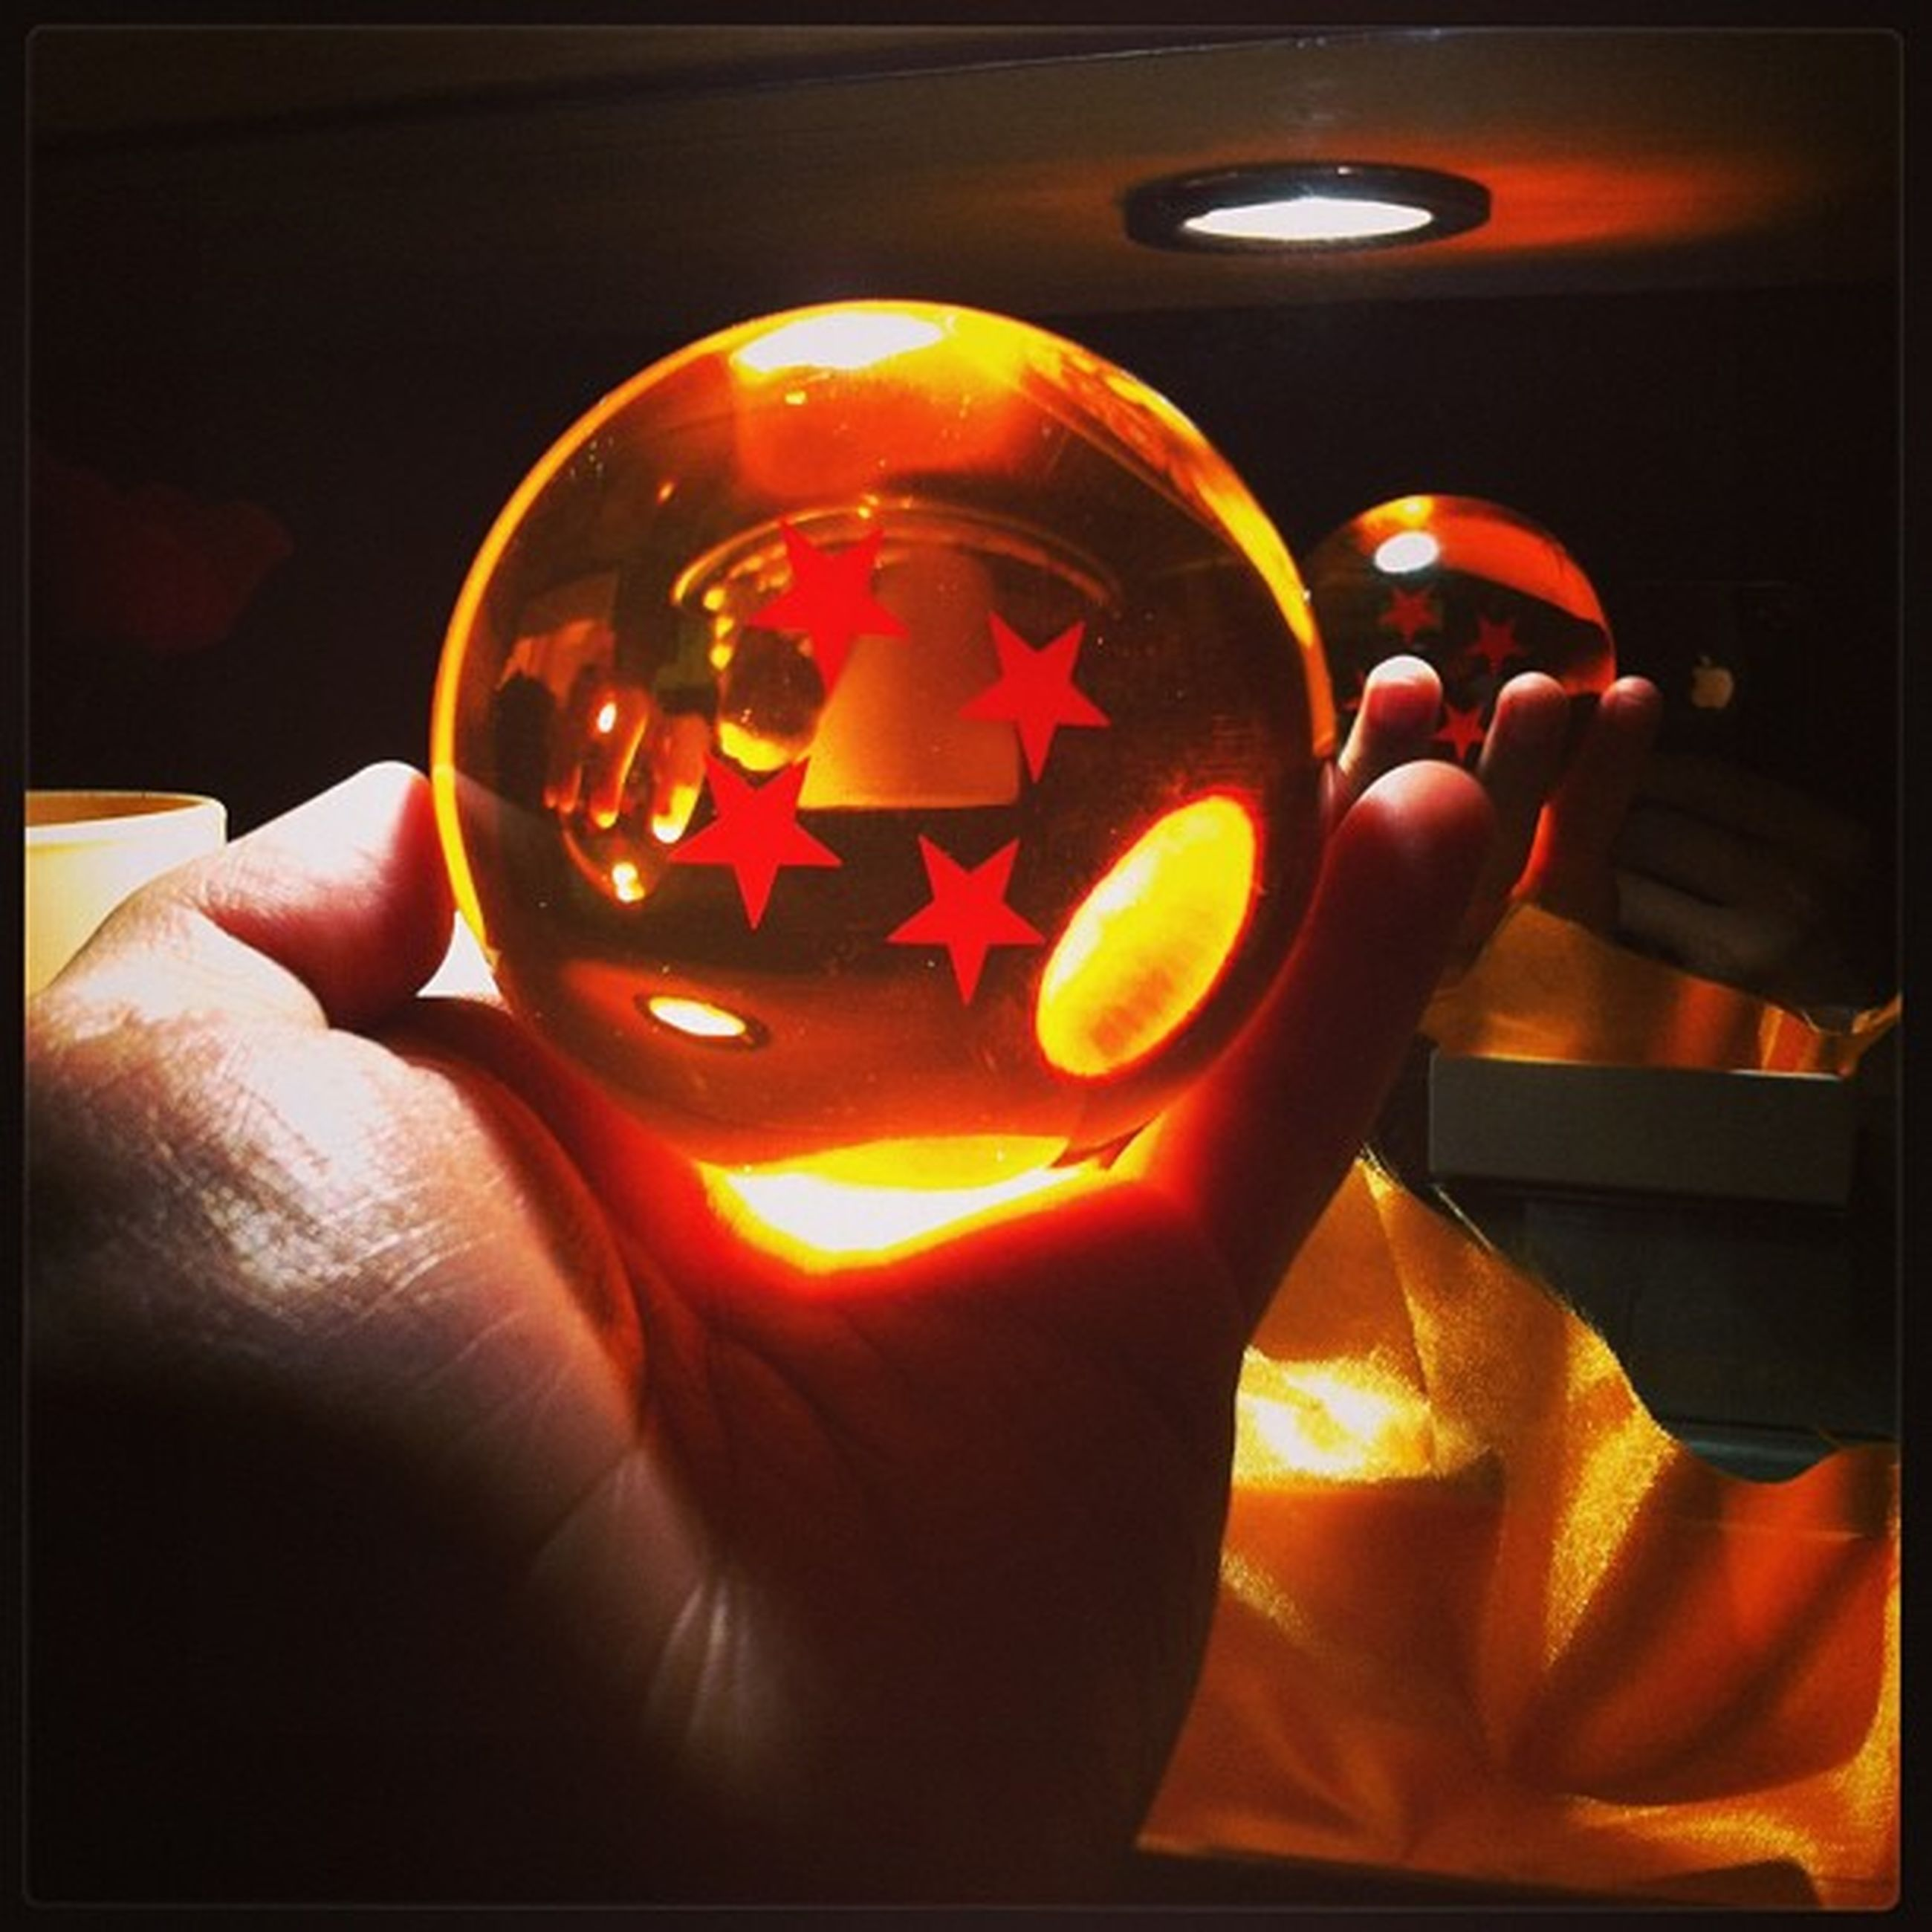 indoors, transfer print, person, auto post production filter, close-up, holding, part of, glass - material, human finger, unrecognizable person, reflection, illuminated, lifestyles, orange color, red, cropped, transparent